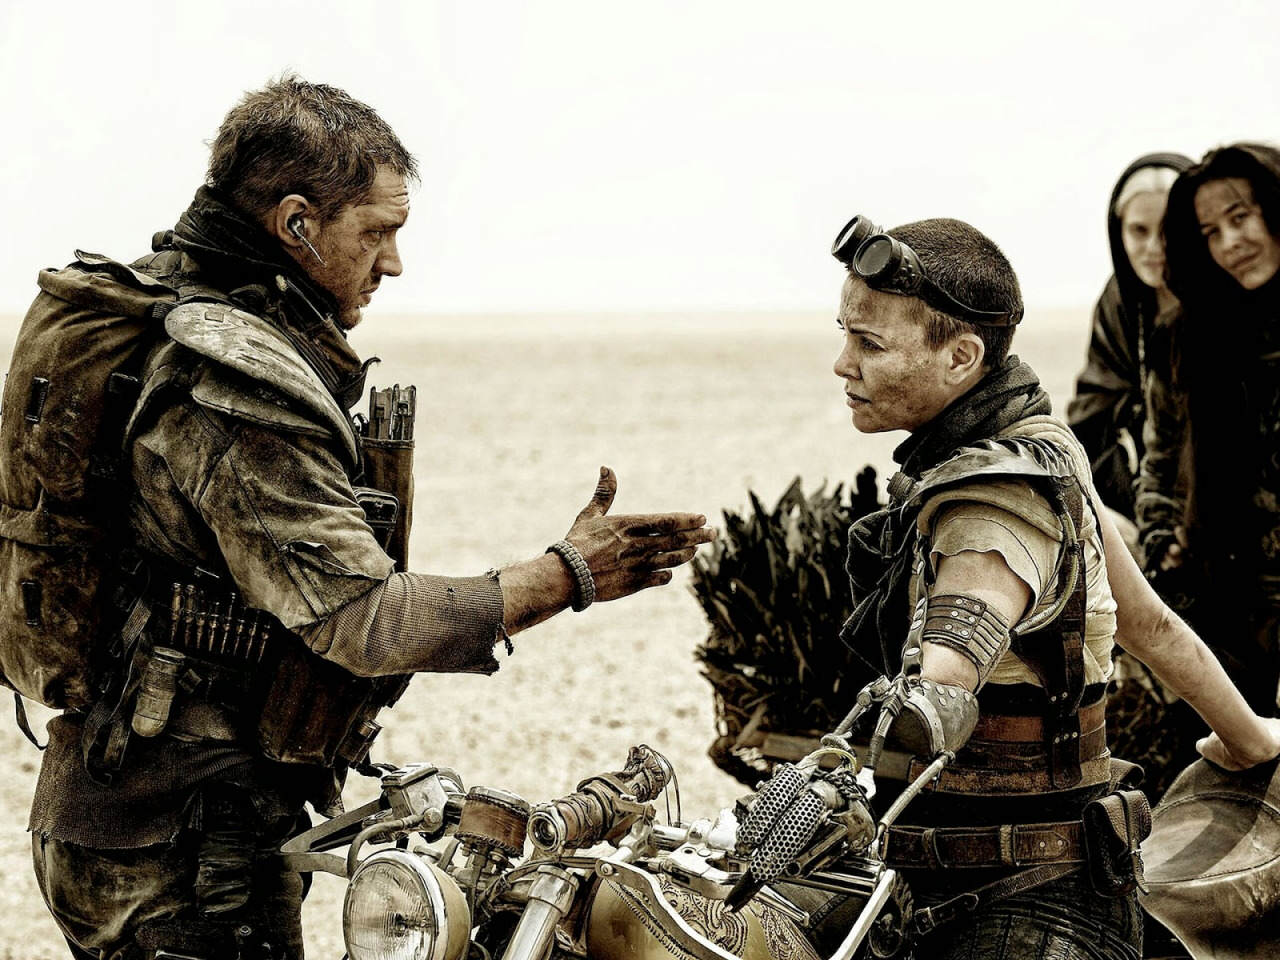 tom hardy and charlize theron in mad mx:fury road